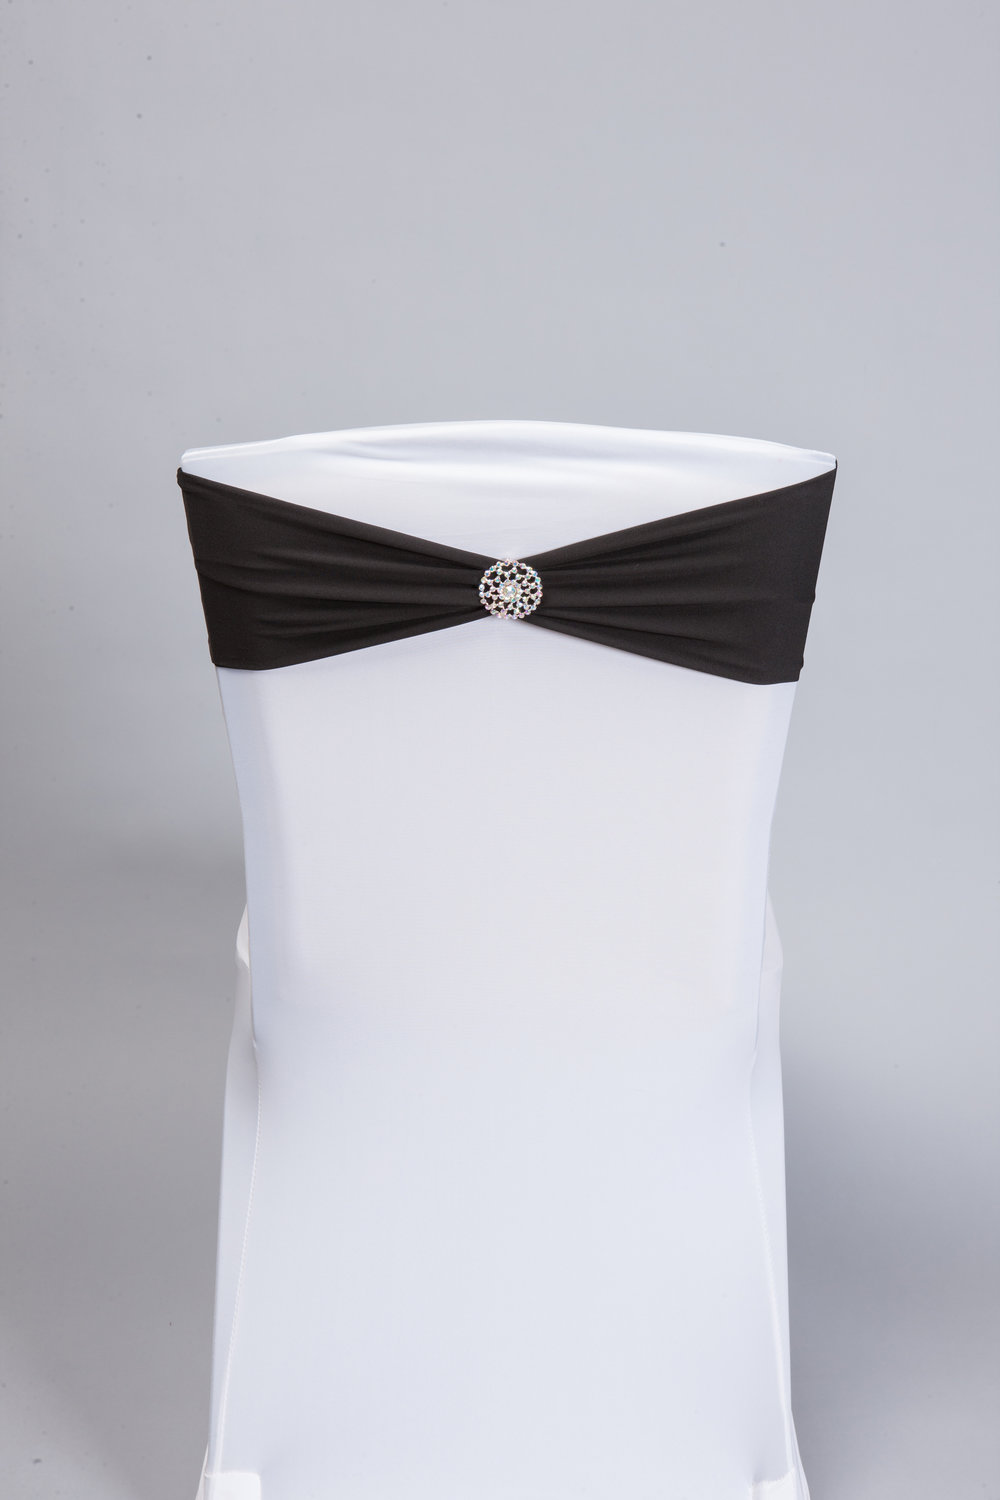 Black Spandex Band with Silver Bling Pin